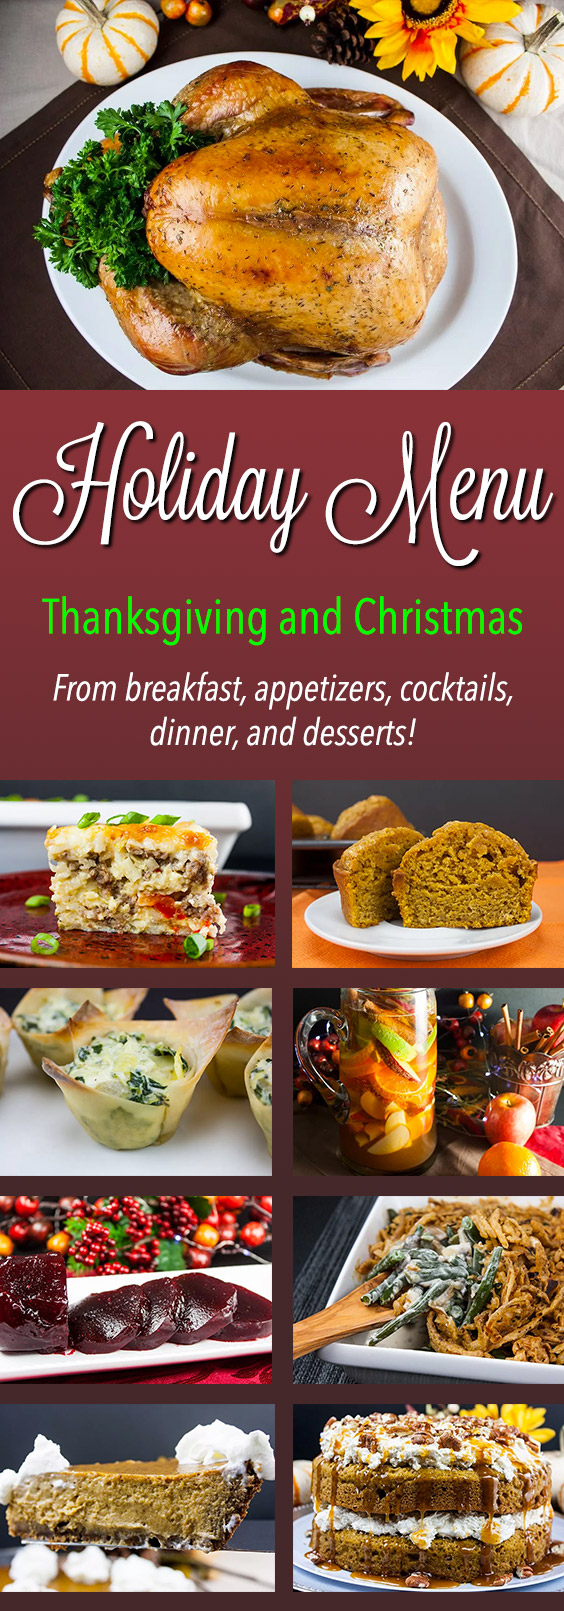 Holiday Menu - The ULTIMATE list of recipes from breakfast, appetizers, cocktails, dinner and desserts to please all your guests during #Thanksgiving and #Christmas.